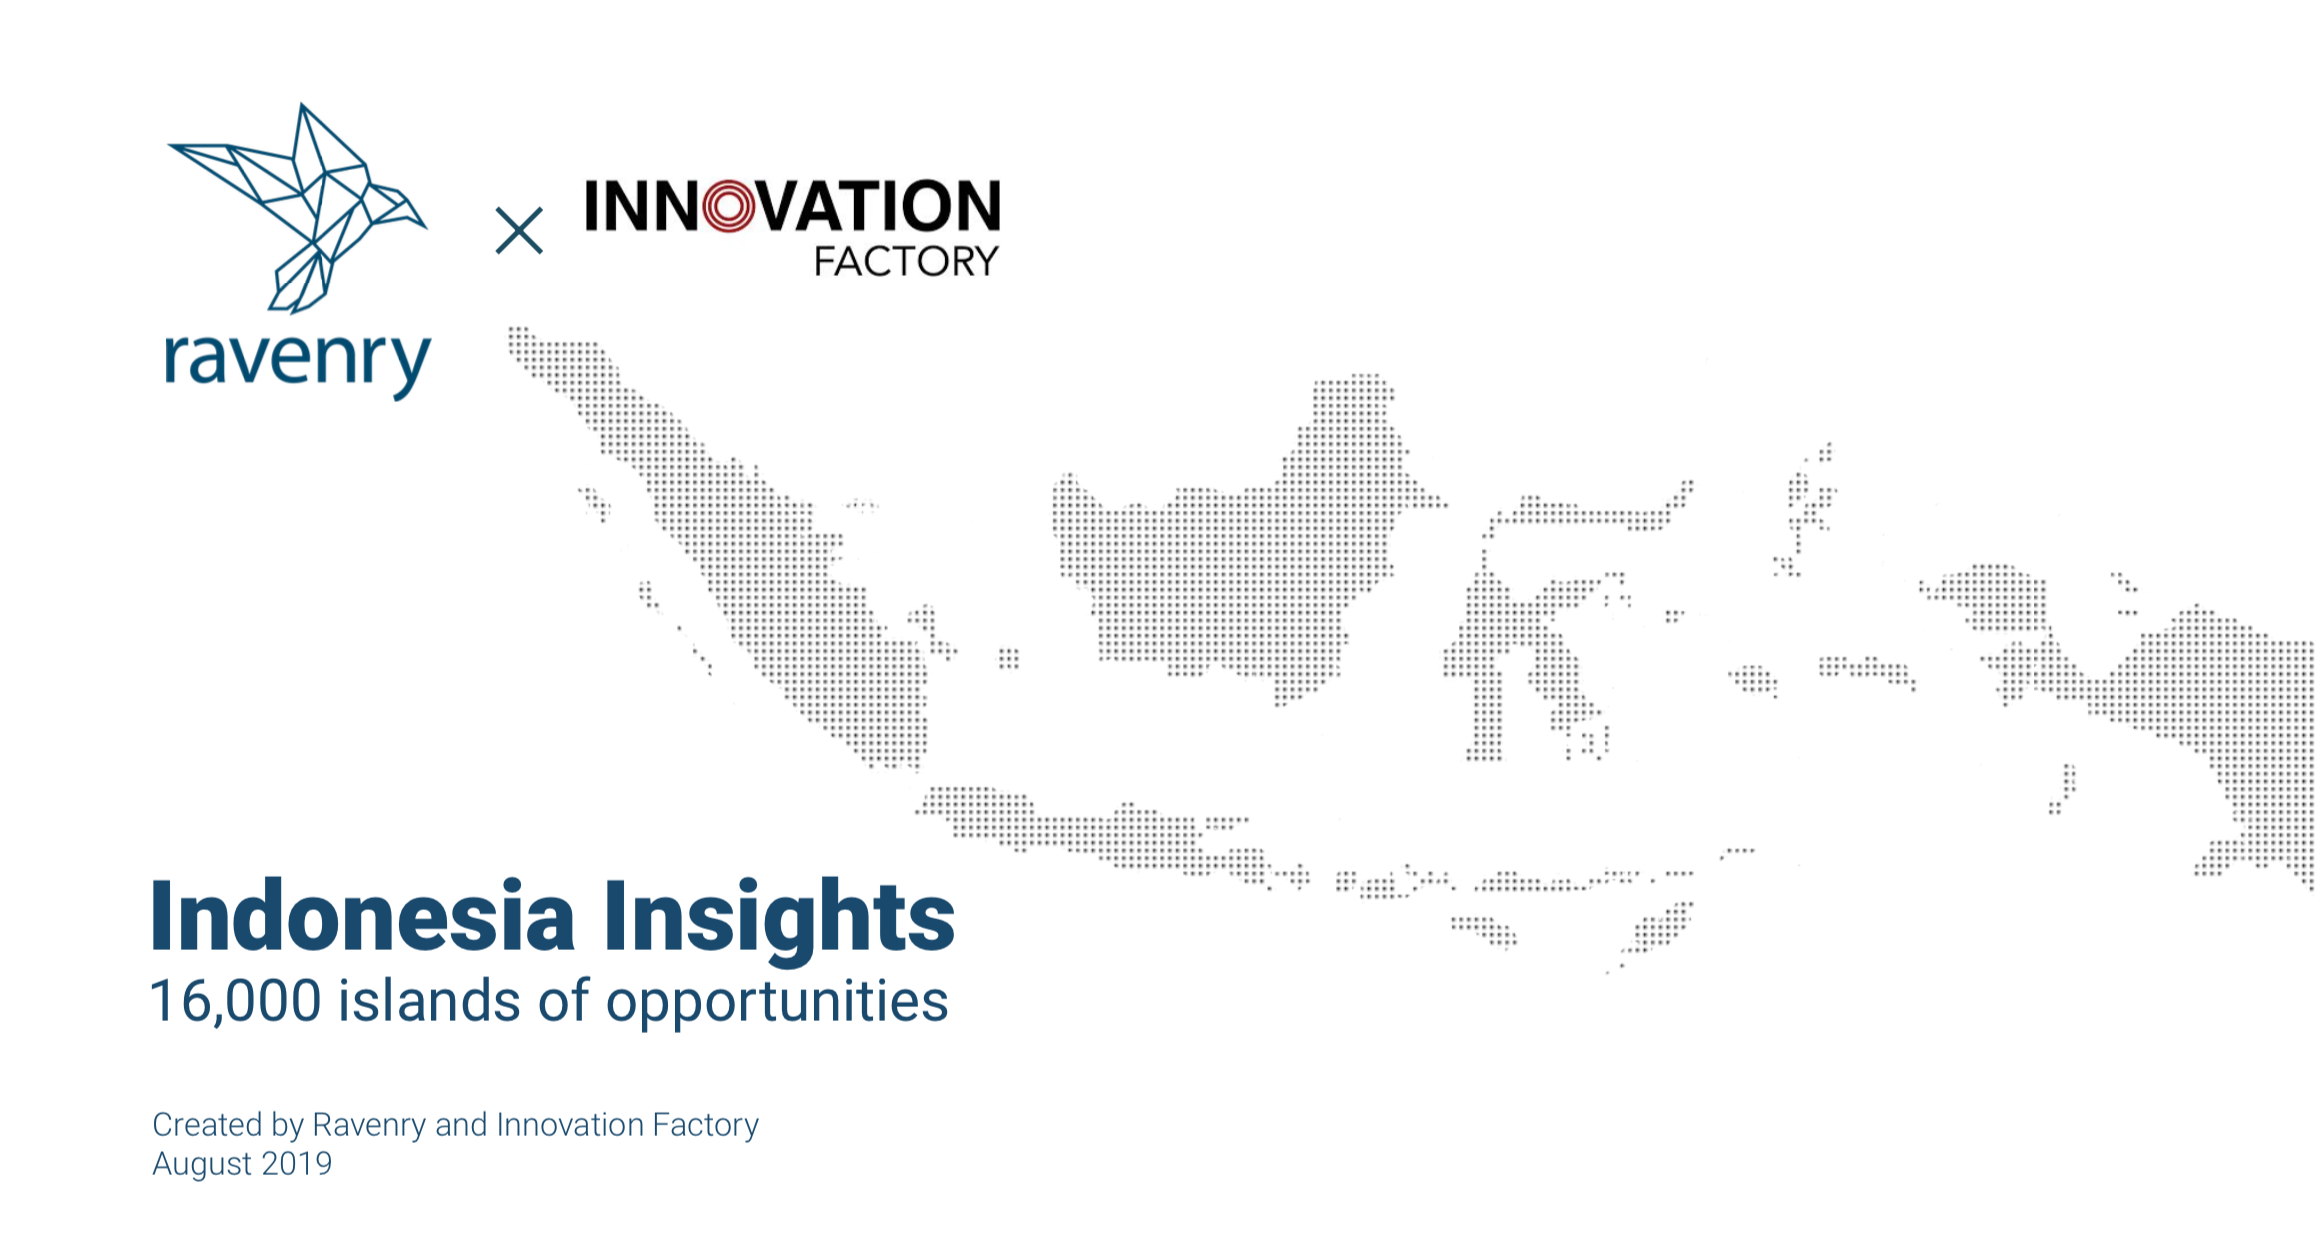 Indonesia Insights: 16,000 islands of opportunities